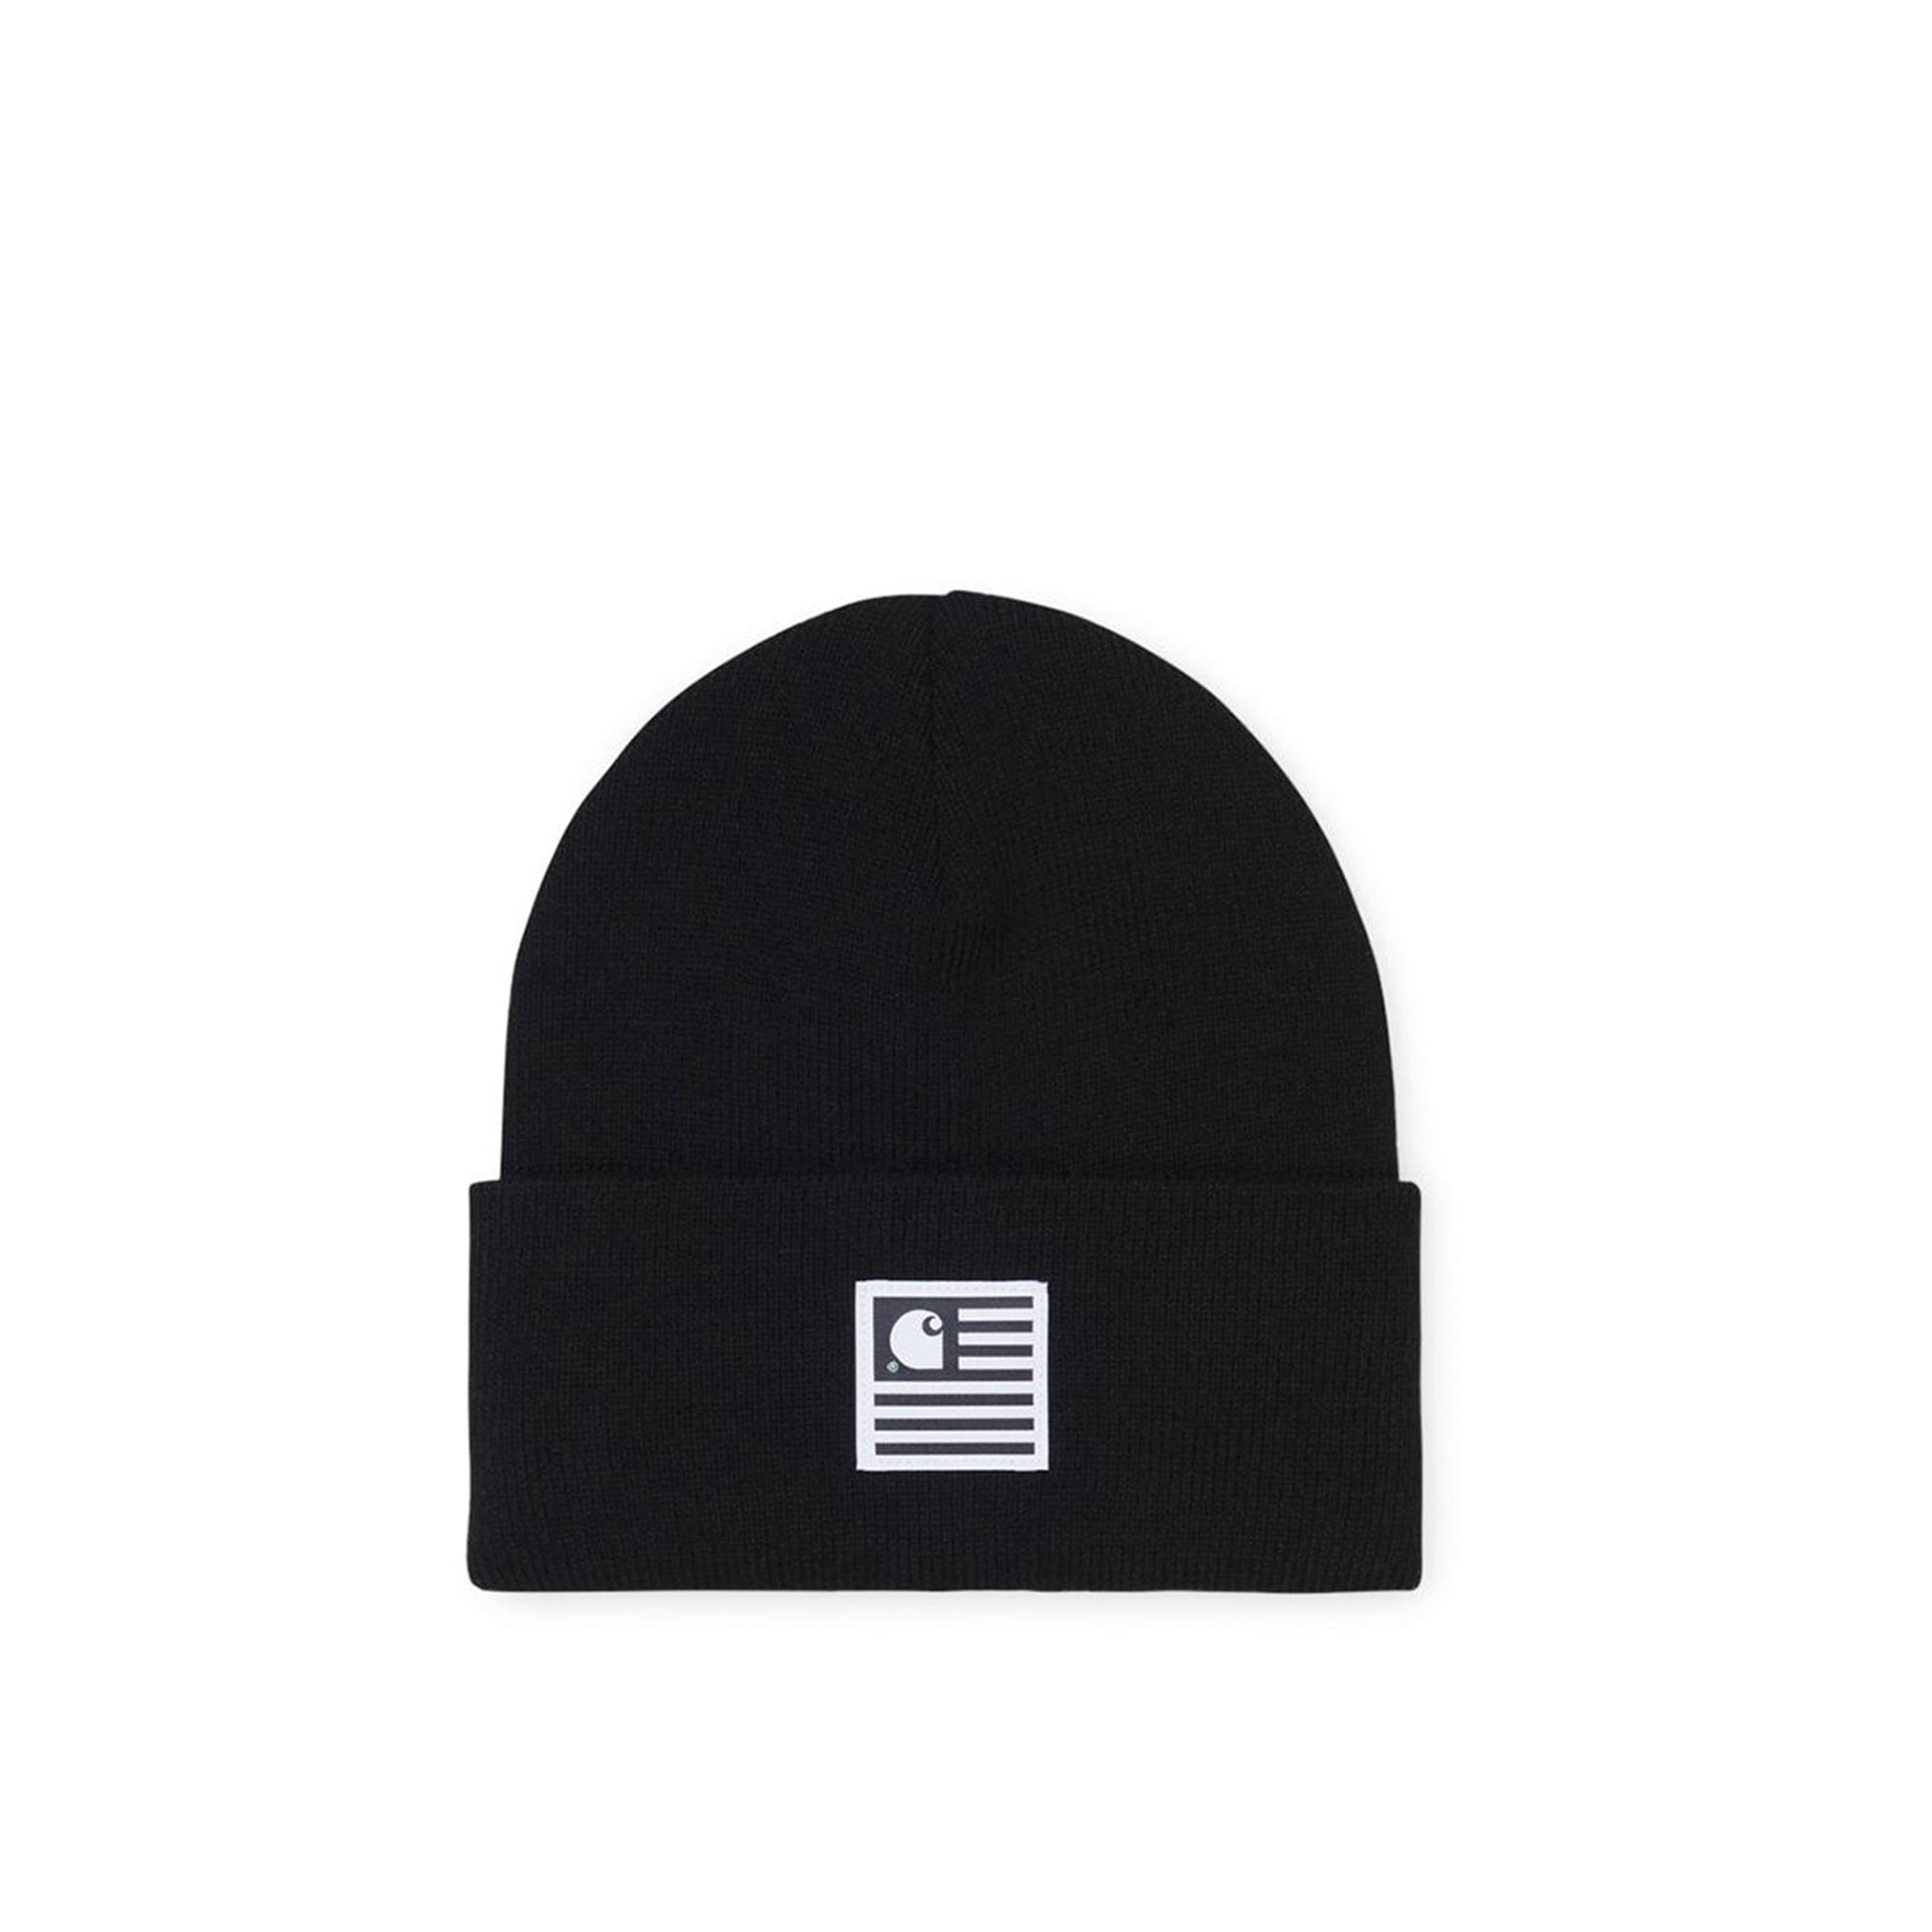 Carhartt WIP State Beanie: Black - The Union Project